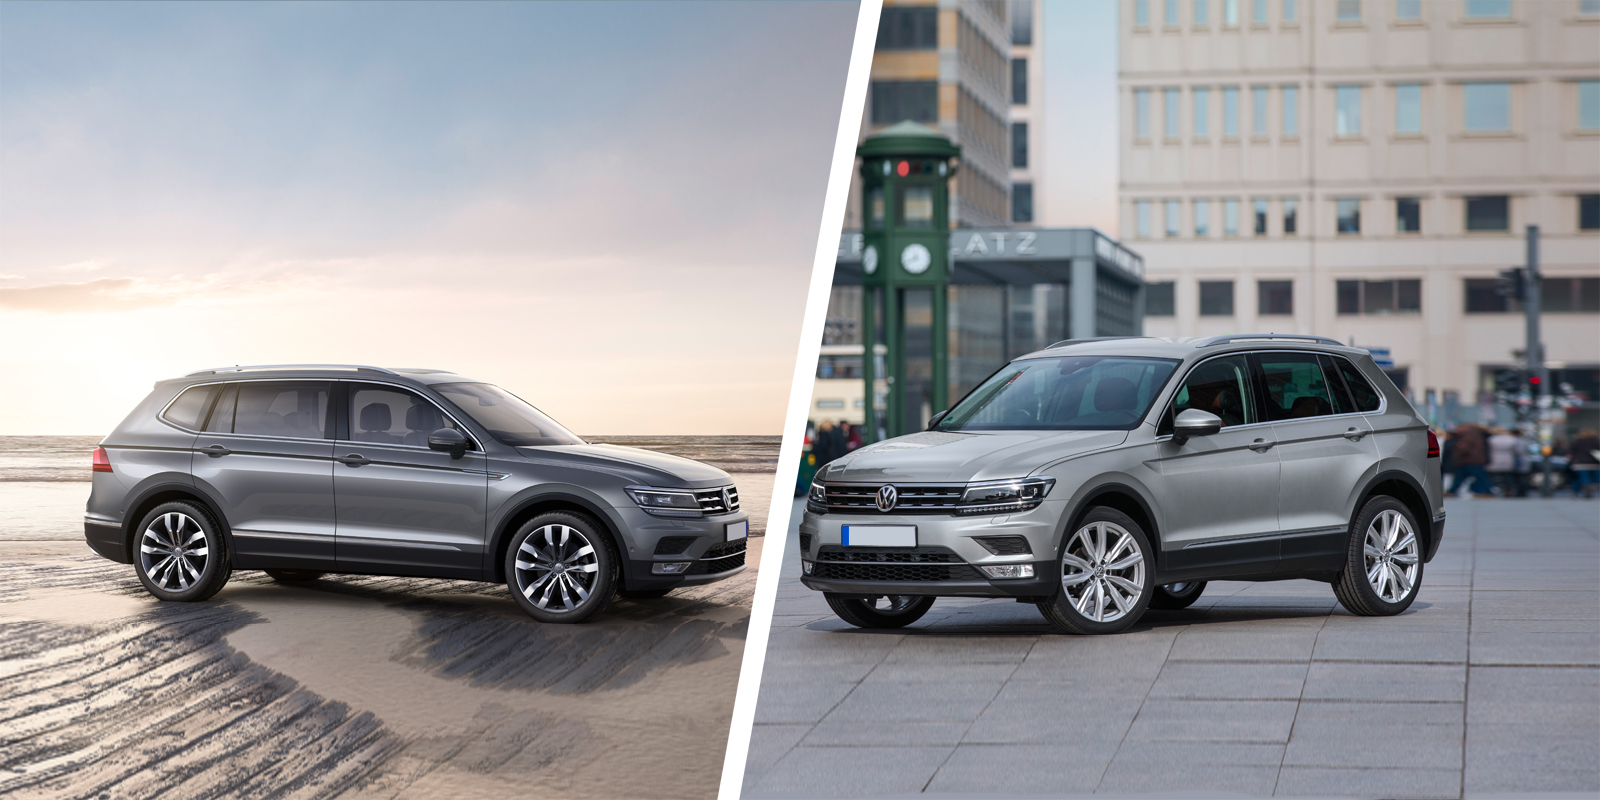 vw tiguan allspace 7 seater vs vw tiguan 5 seater carwow. Black Bedroom Furniture Sets. Home Design Ideas